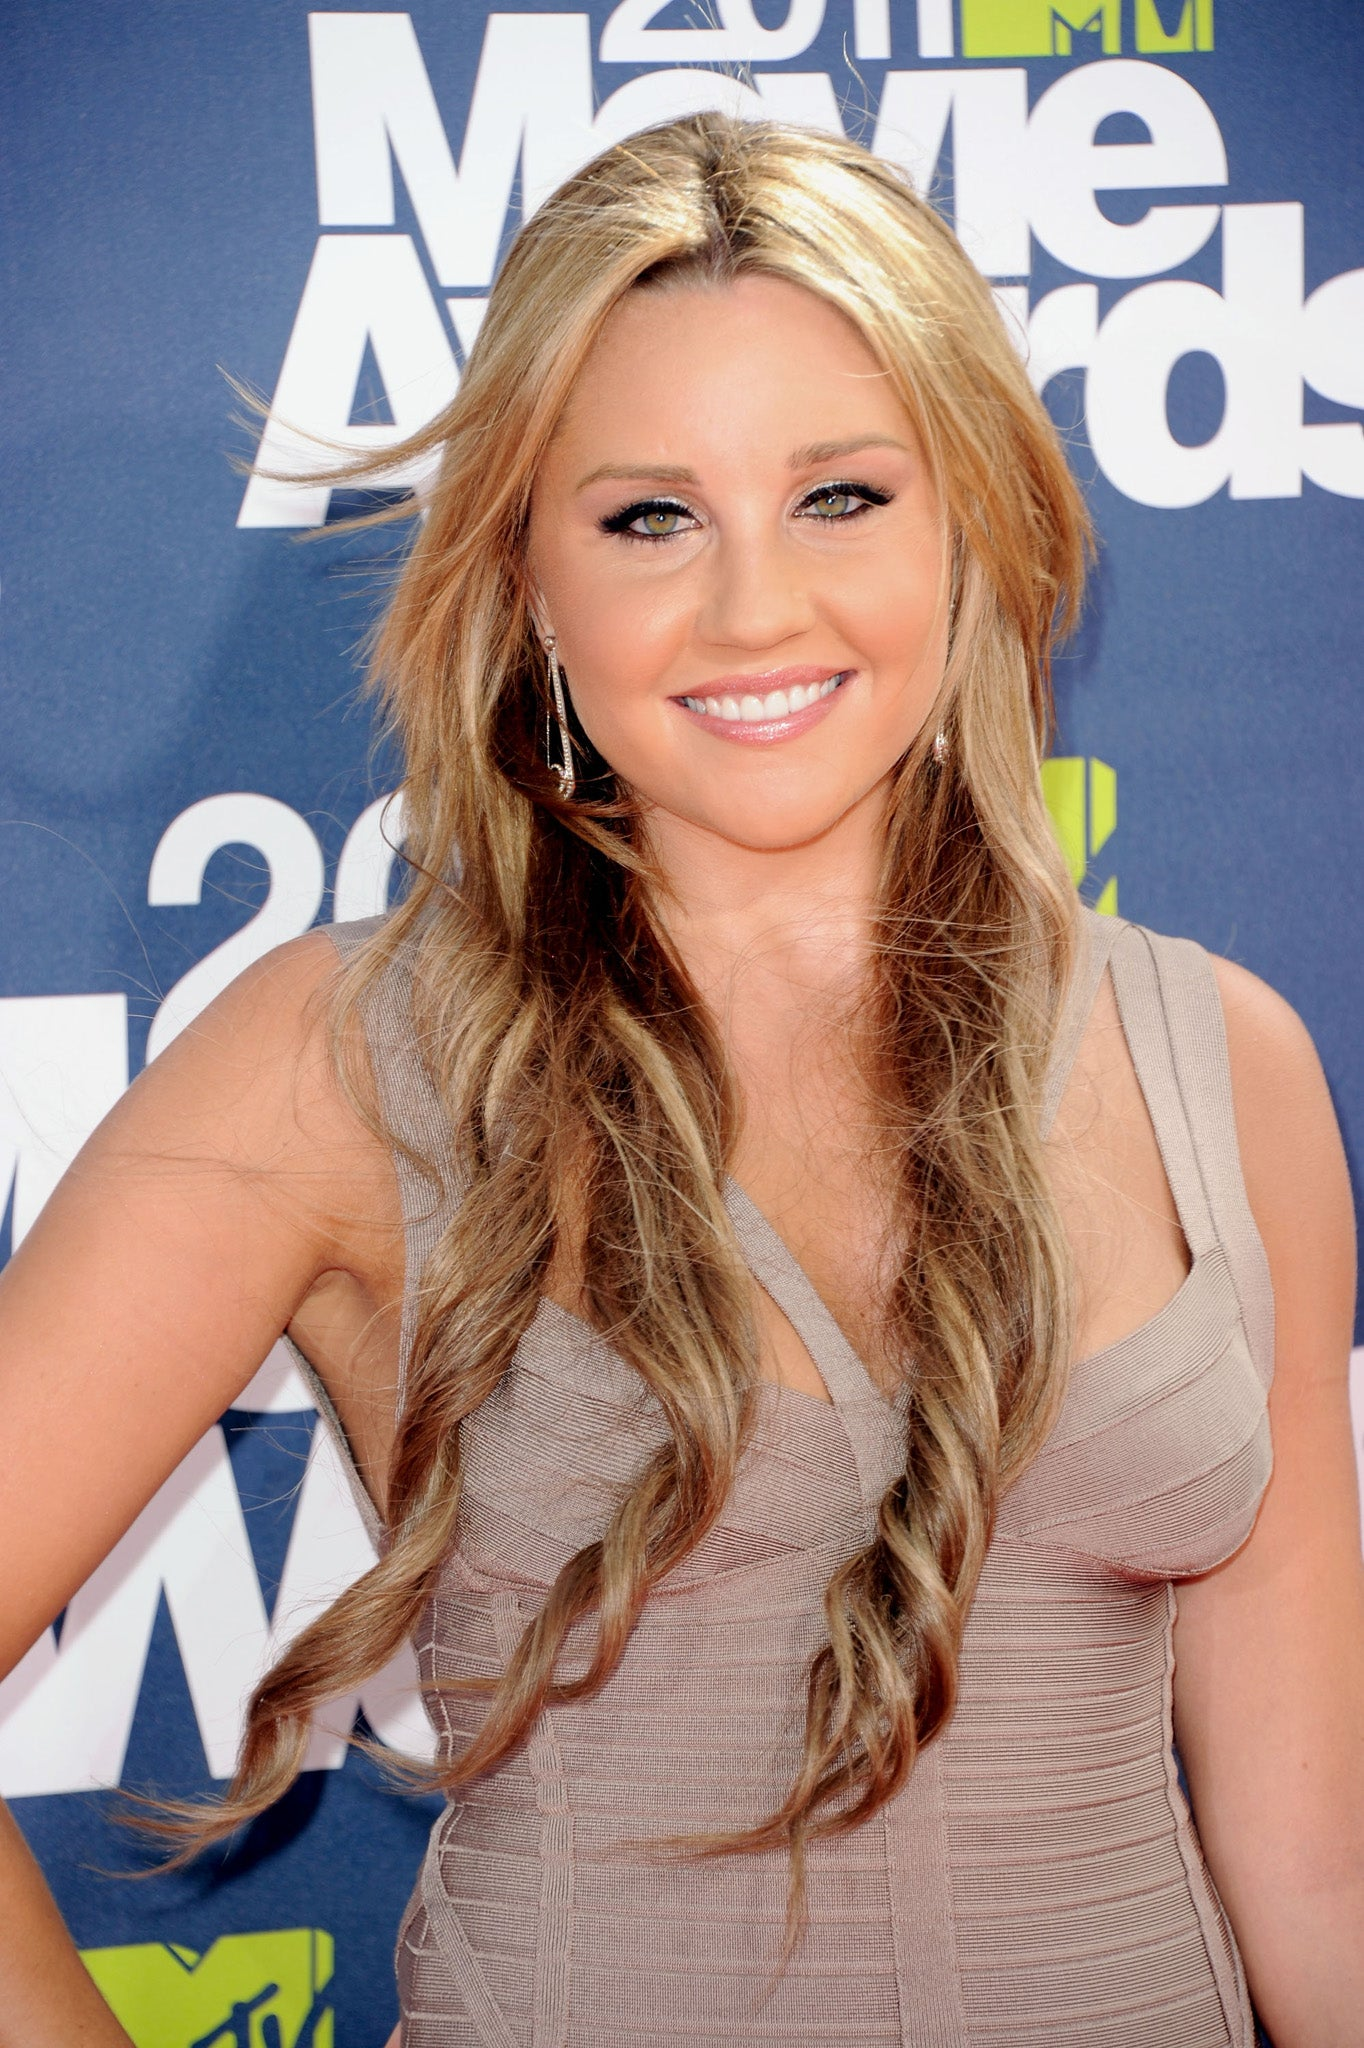 Amanda Bynes 2006 she's the man actress amanda bynes arrested after throwing